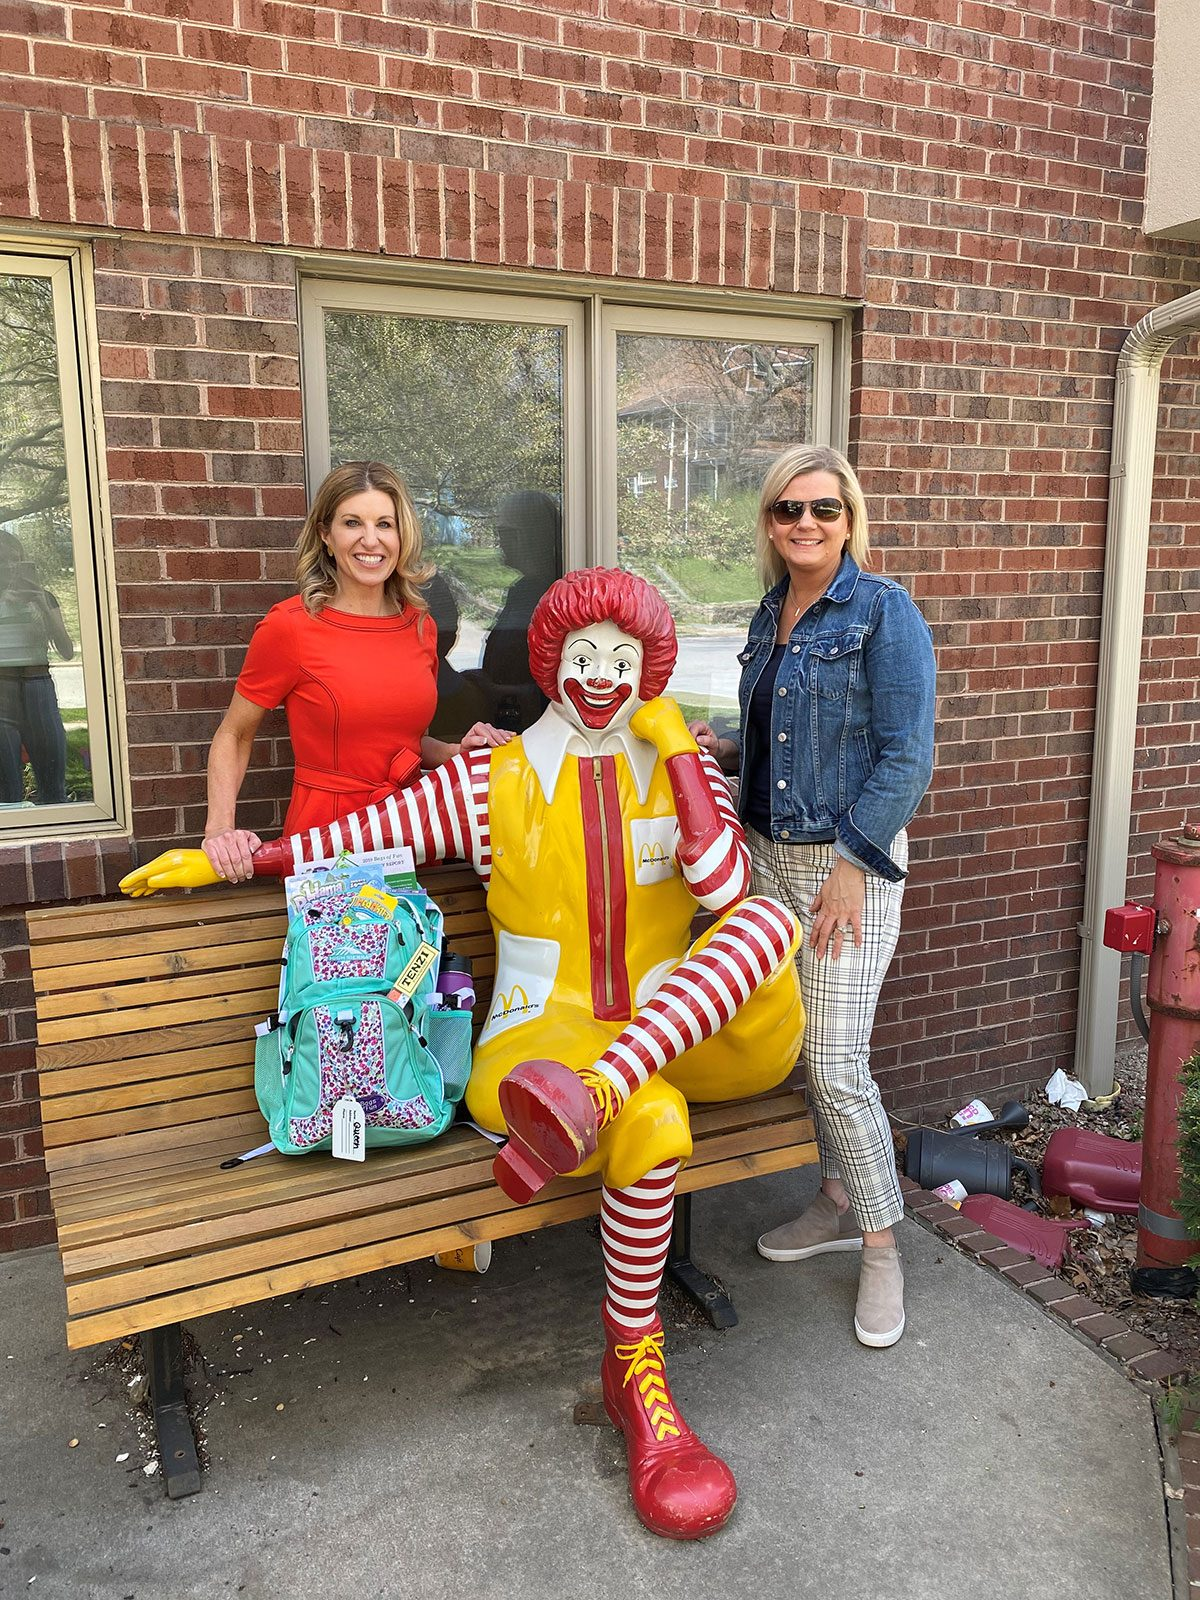 Staff with Ronald McDonald Statue